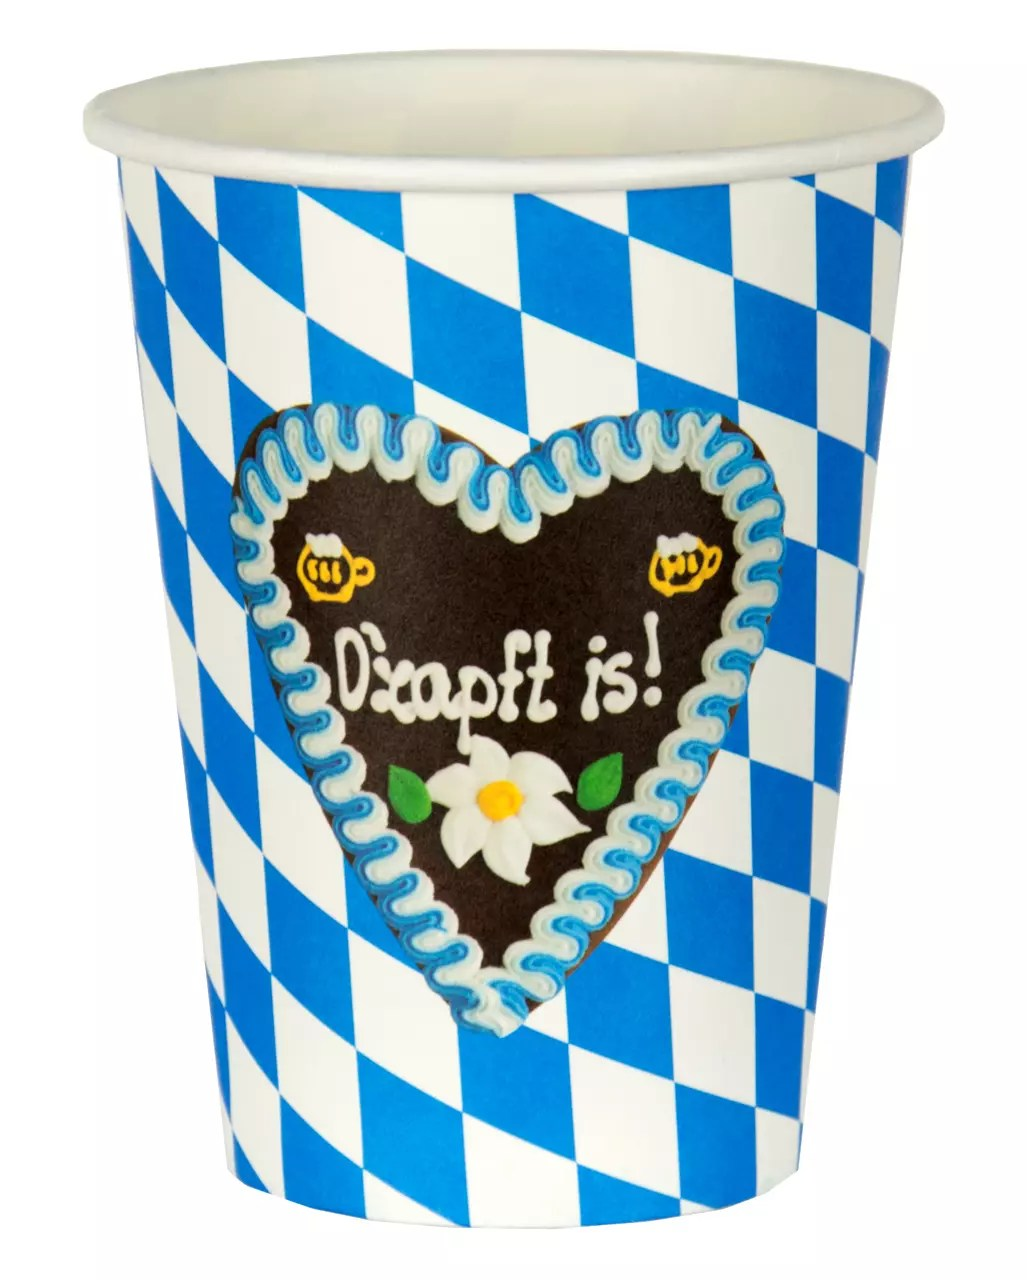 Oktoberfest Mottoparty Ozapft Is Oktoberfest Party Cup 8 Pcs